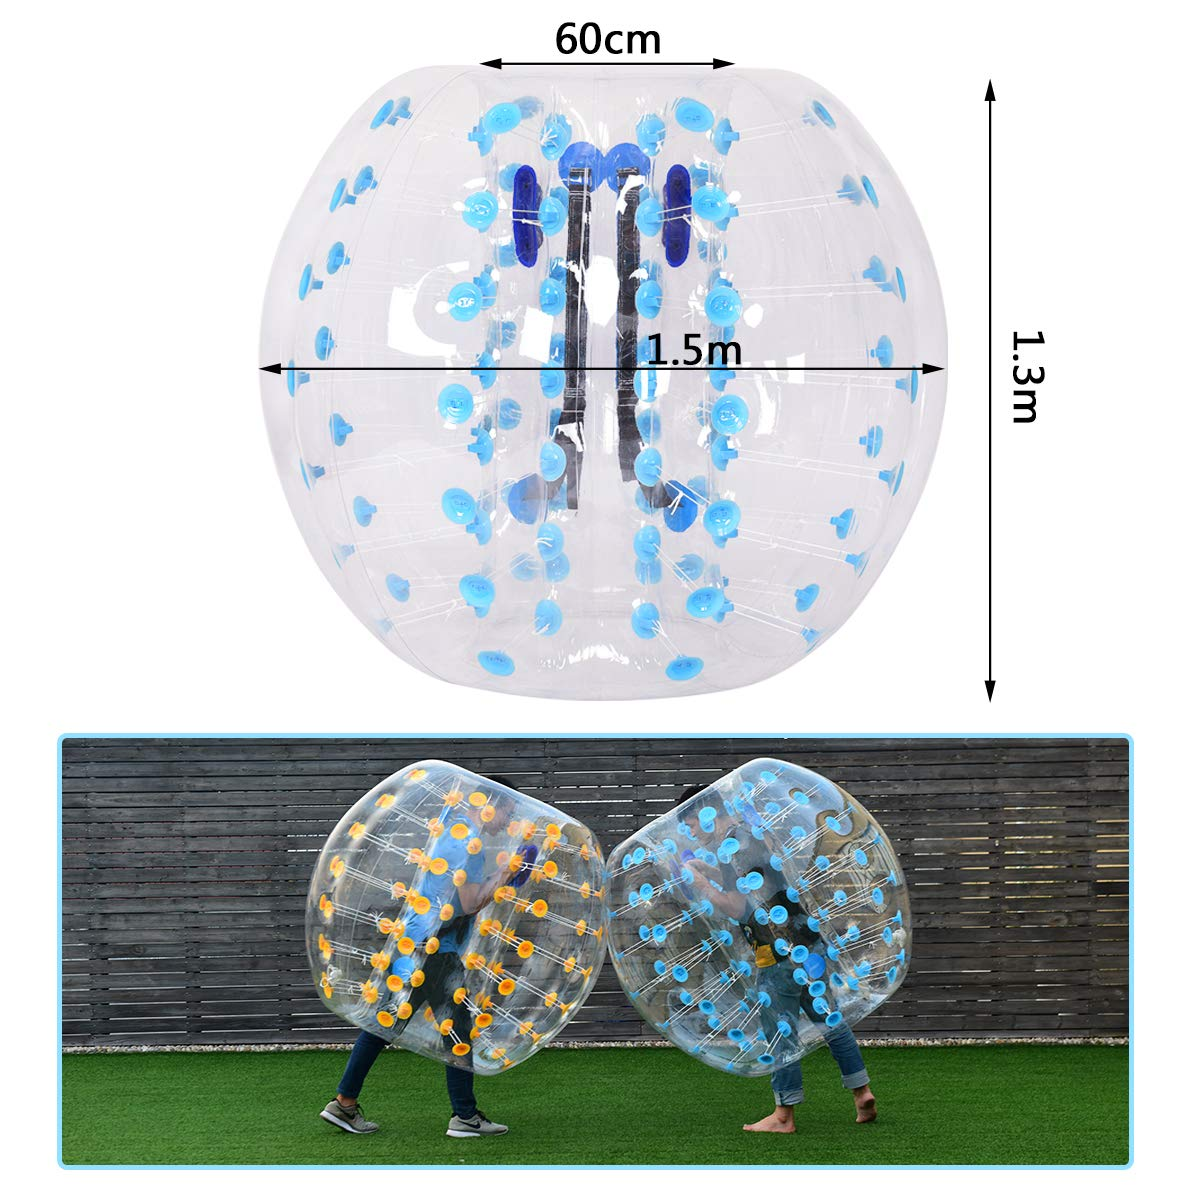 Costzon Inflatable Bumper Soccer Ball, Dia 5ft (1.5m) Giant Human Hamster Bubble Ball, 8mm Thickness Transparent PVC Zorb Ball for Kids, Teens Outdoor Team Gaming Play (Light Blue) by Costzon (Image #3)